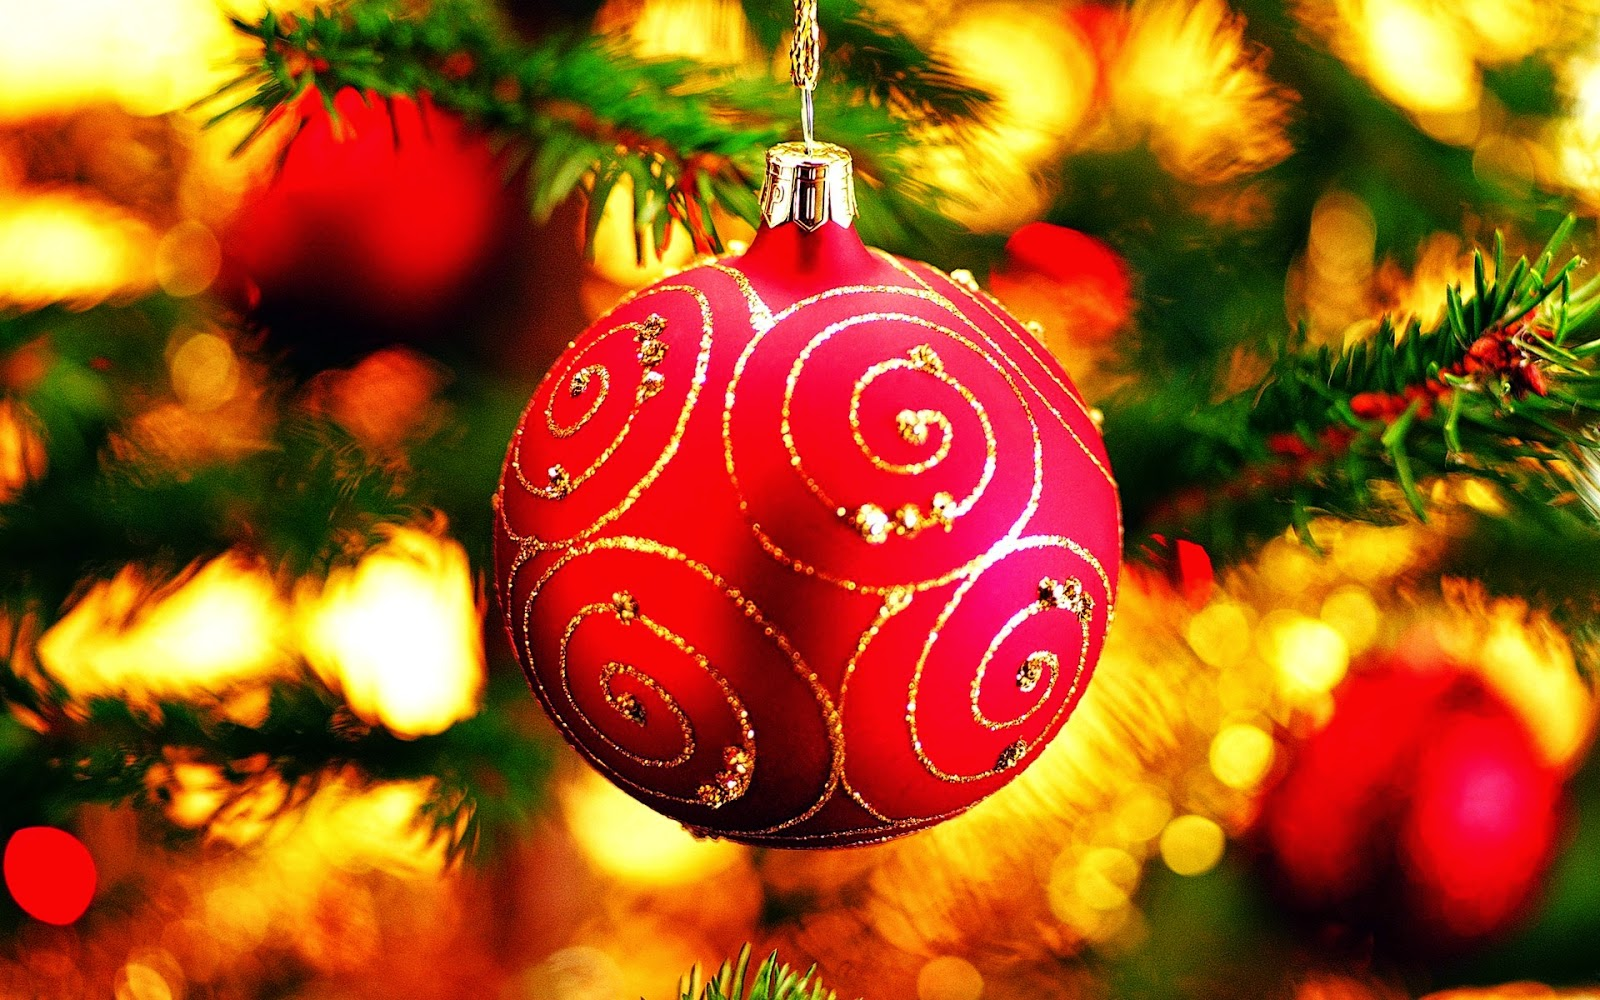 Red-Christmas-baubles-balls-with-golden-stripe-designs-decoration-ideas-photo-images.jpg